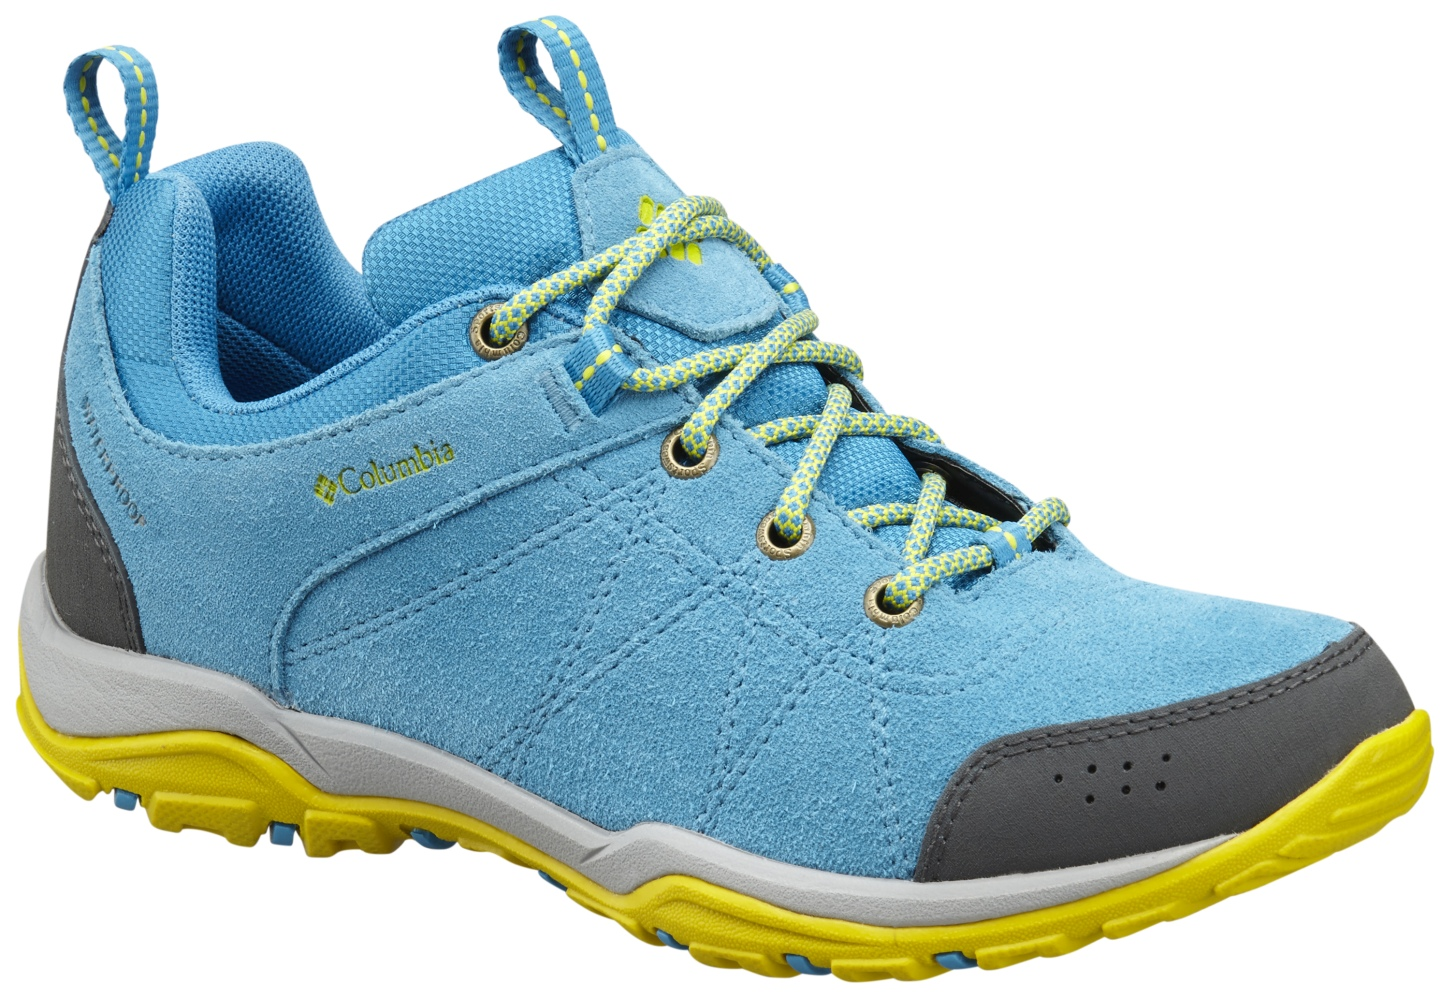 Columbia Women's Fire Venture Low Waterproof Shoes Oxide Blue, Ginkgo-30